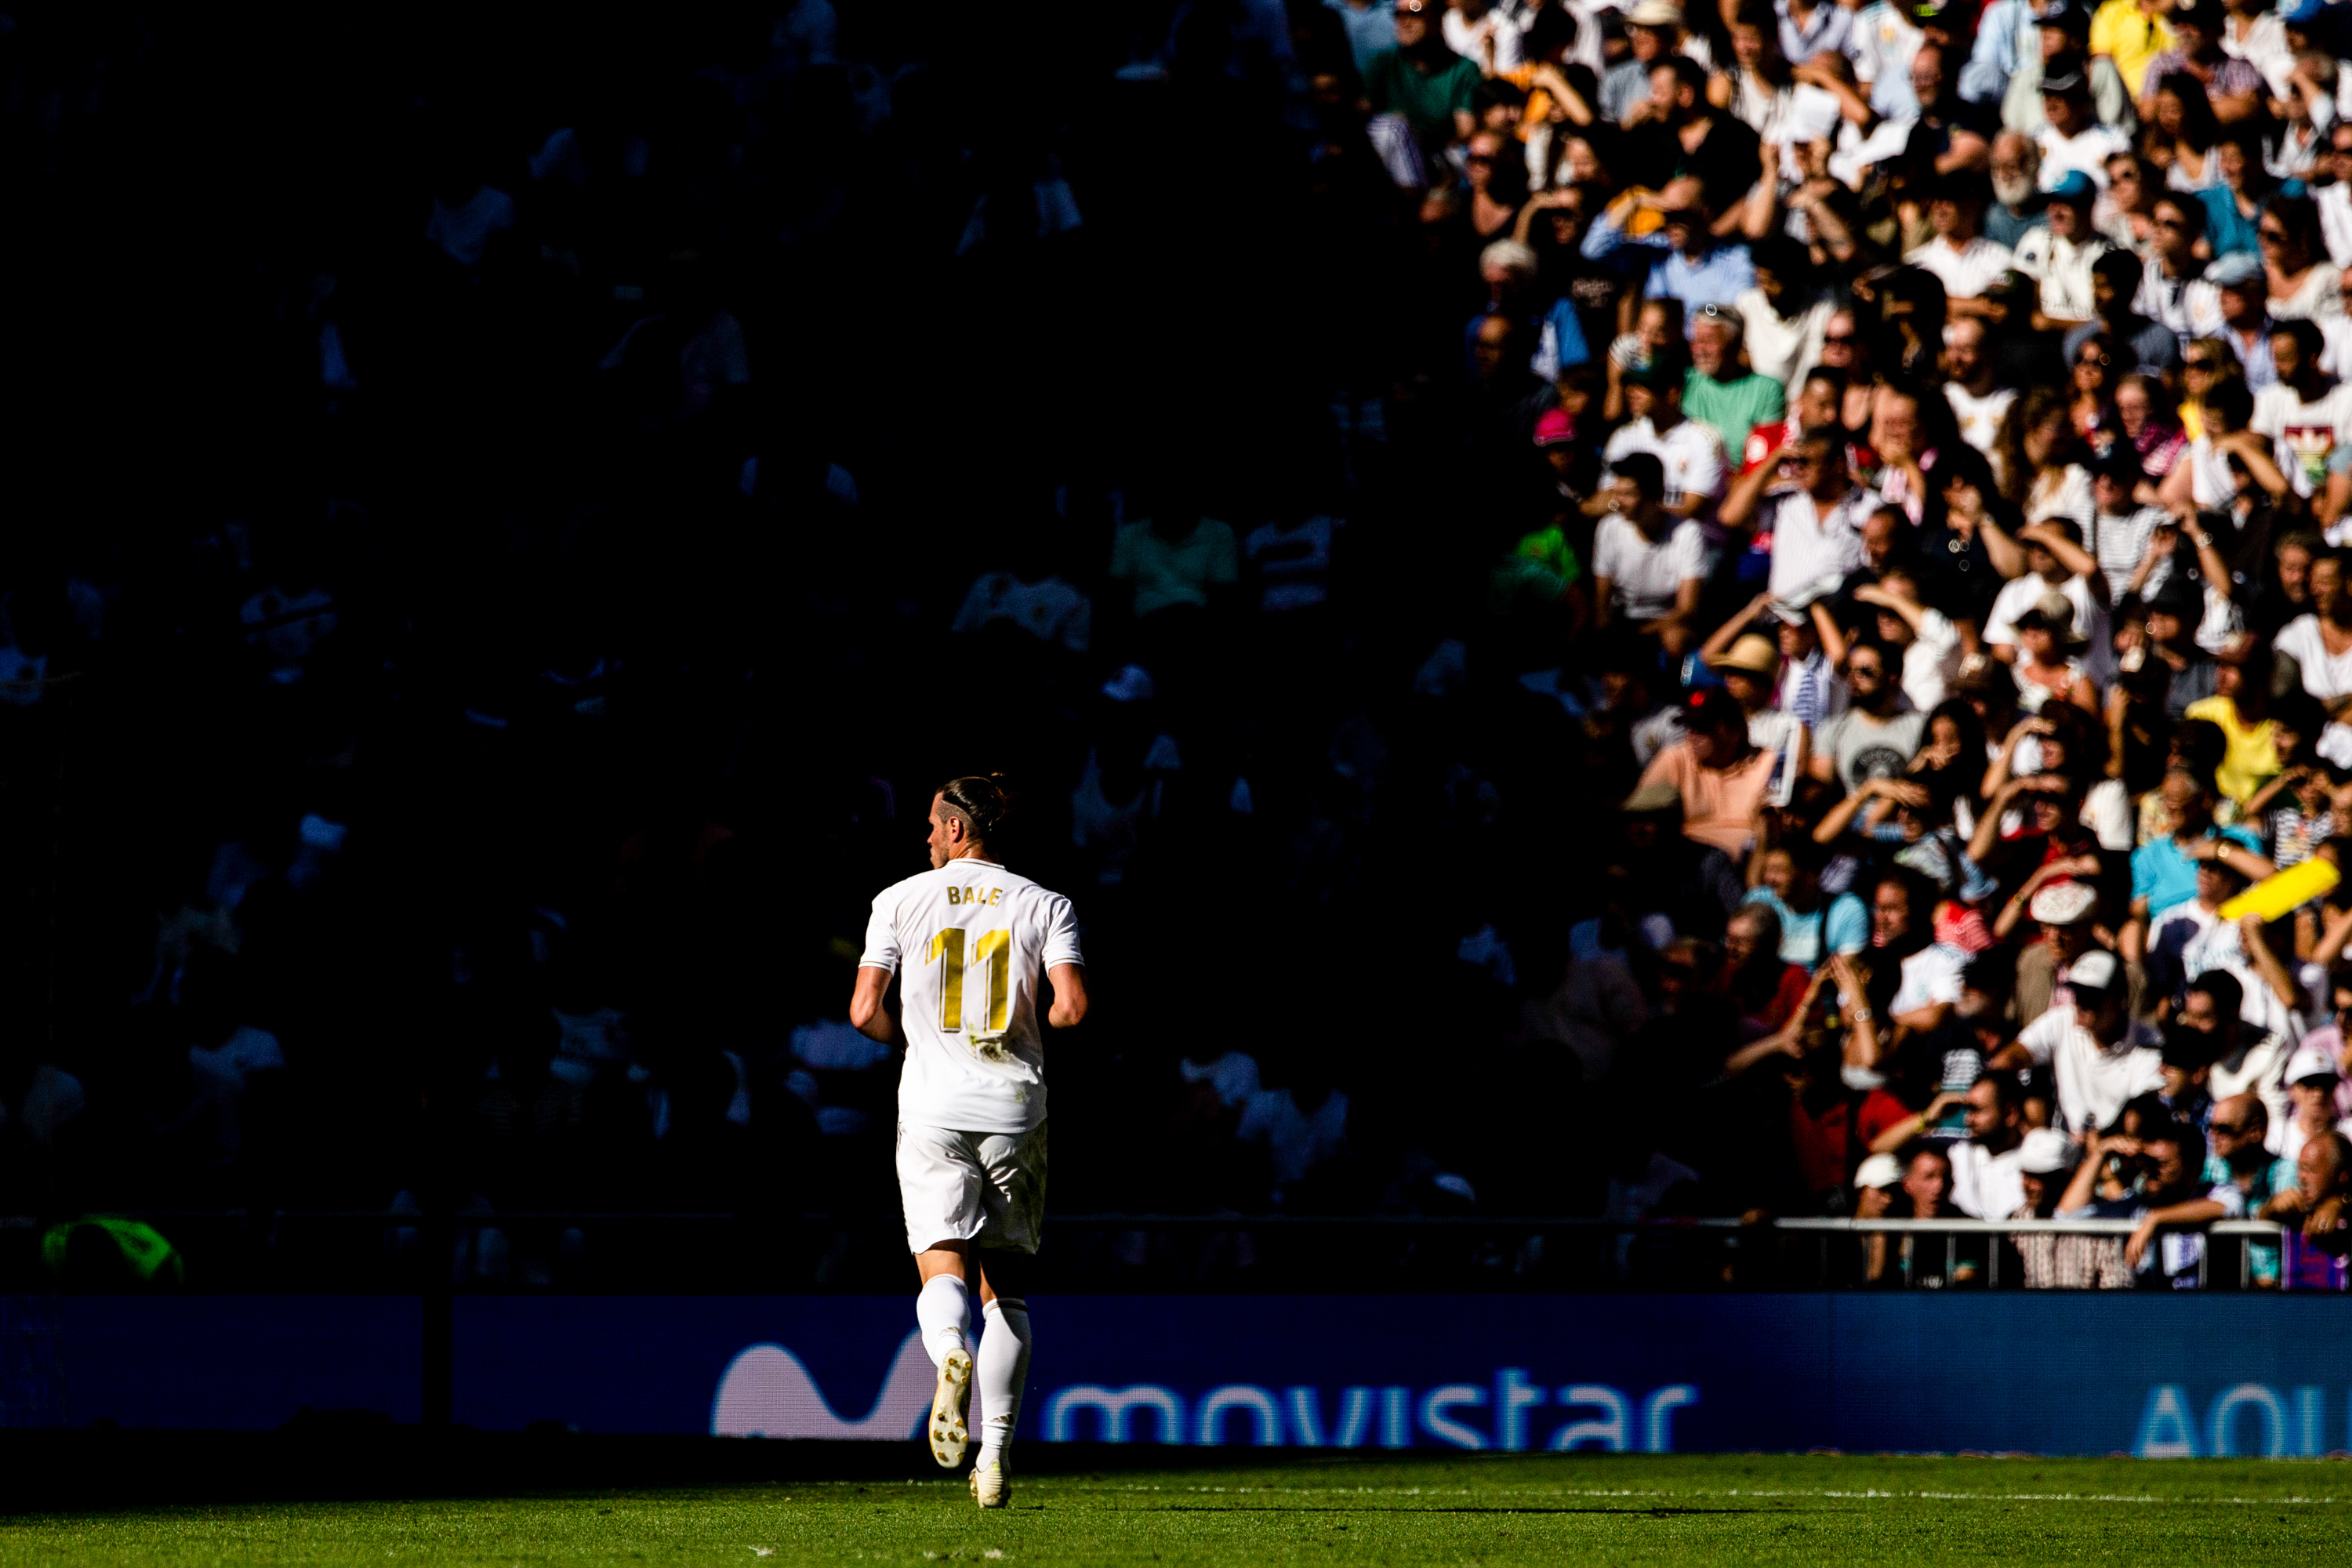 Bale sends yet another warning shot that he wants to leave Real Madrid